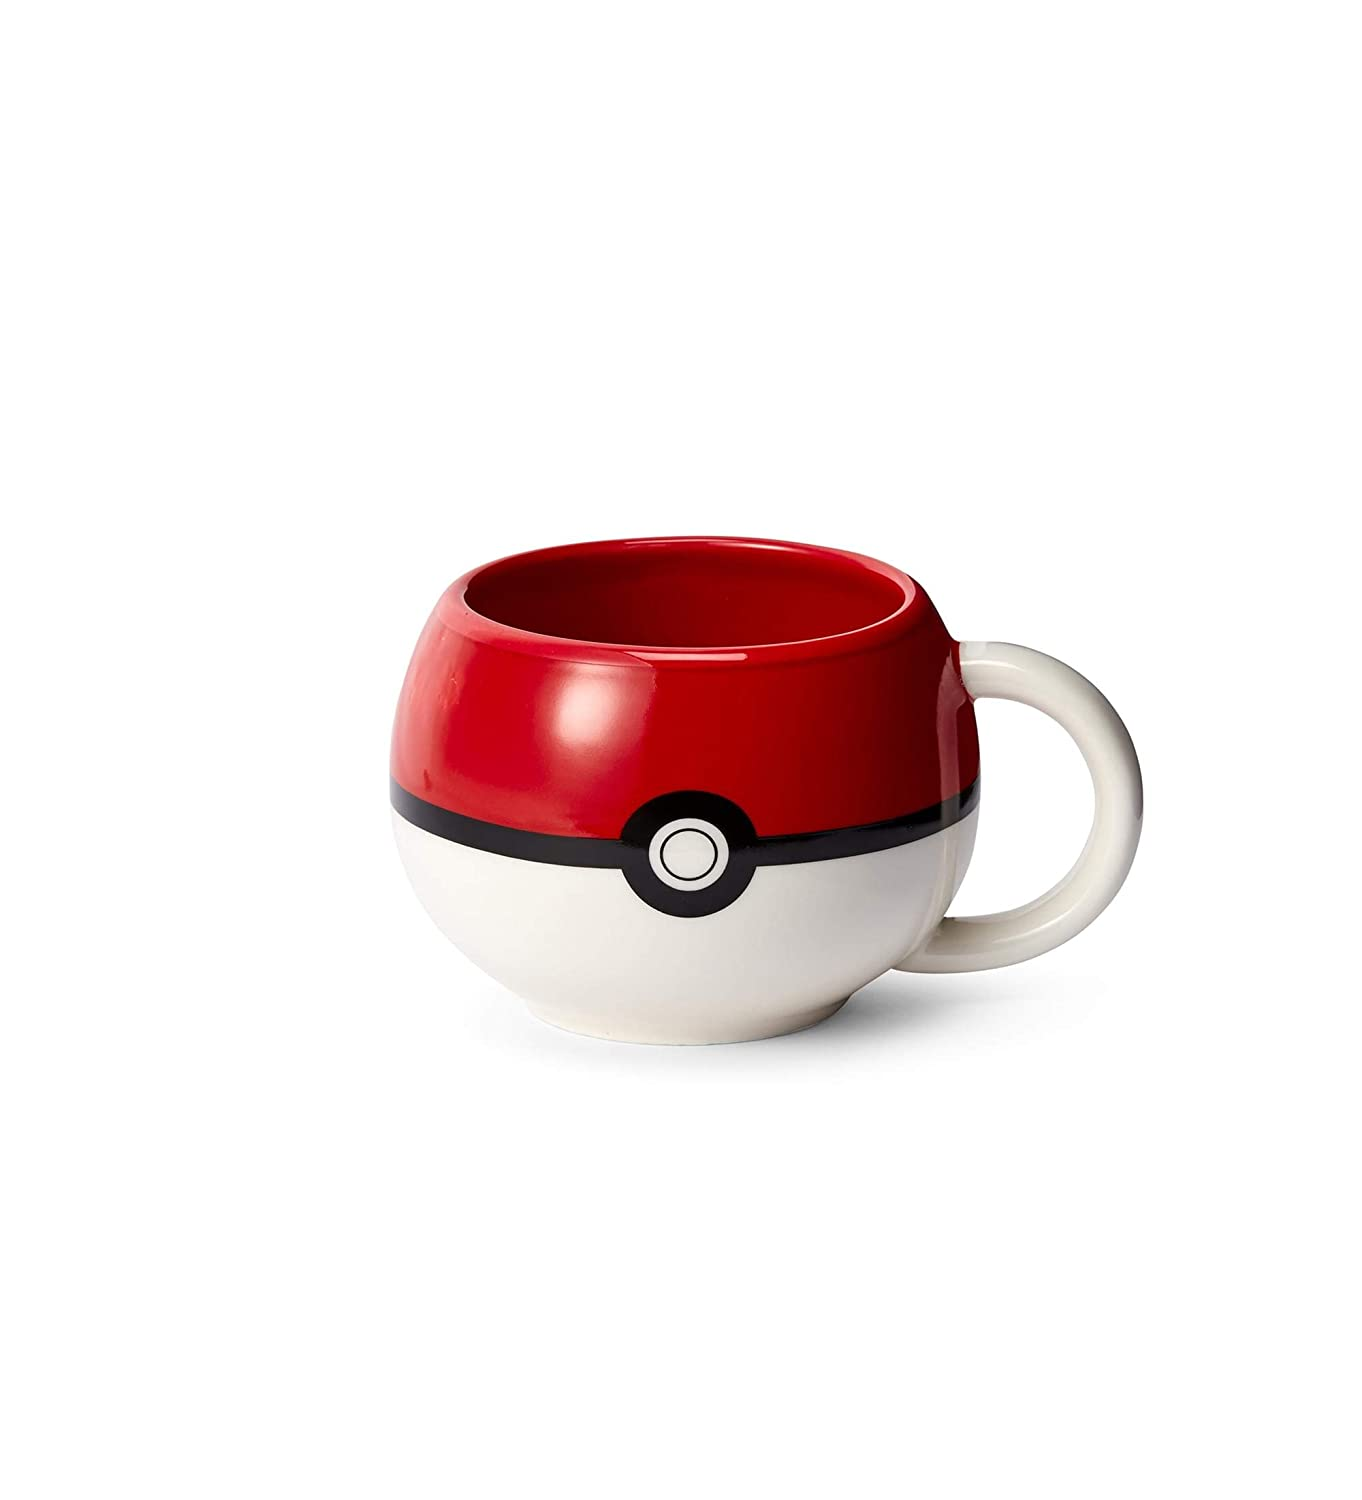 Official Pokemon Pokeball Molded Mug - Ceramic Cup for Hot Coffee, Tea, Cocoa - Novelty Drinking Container - Perfect for Home, Office, Parties - Licensed Nintendo Merchandise